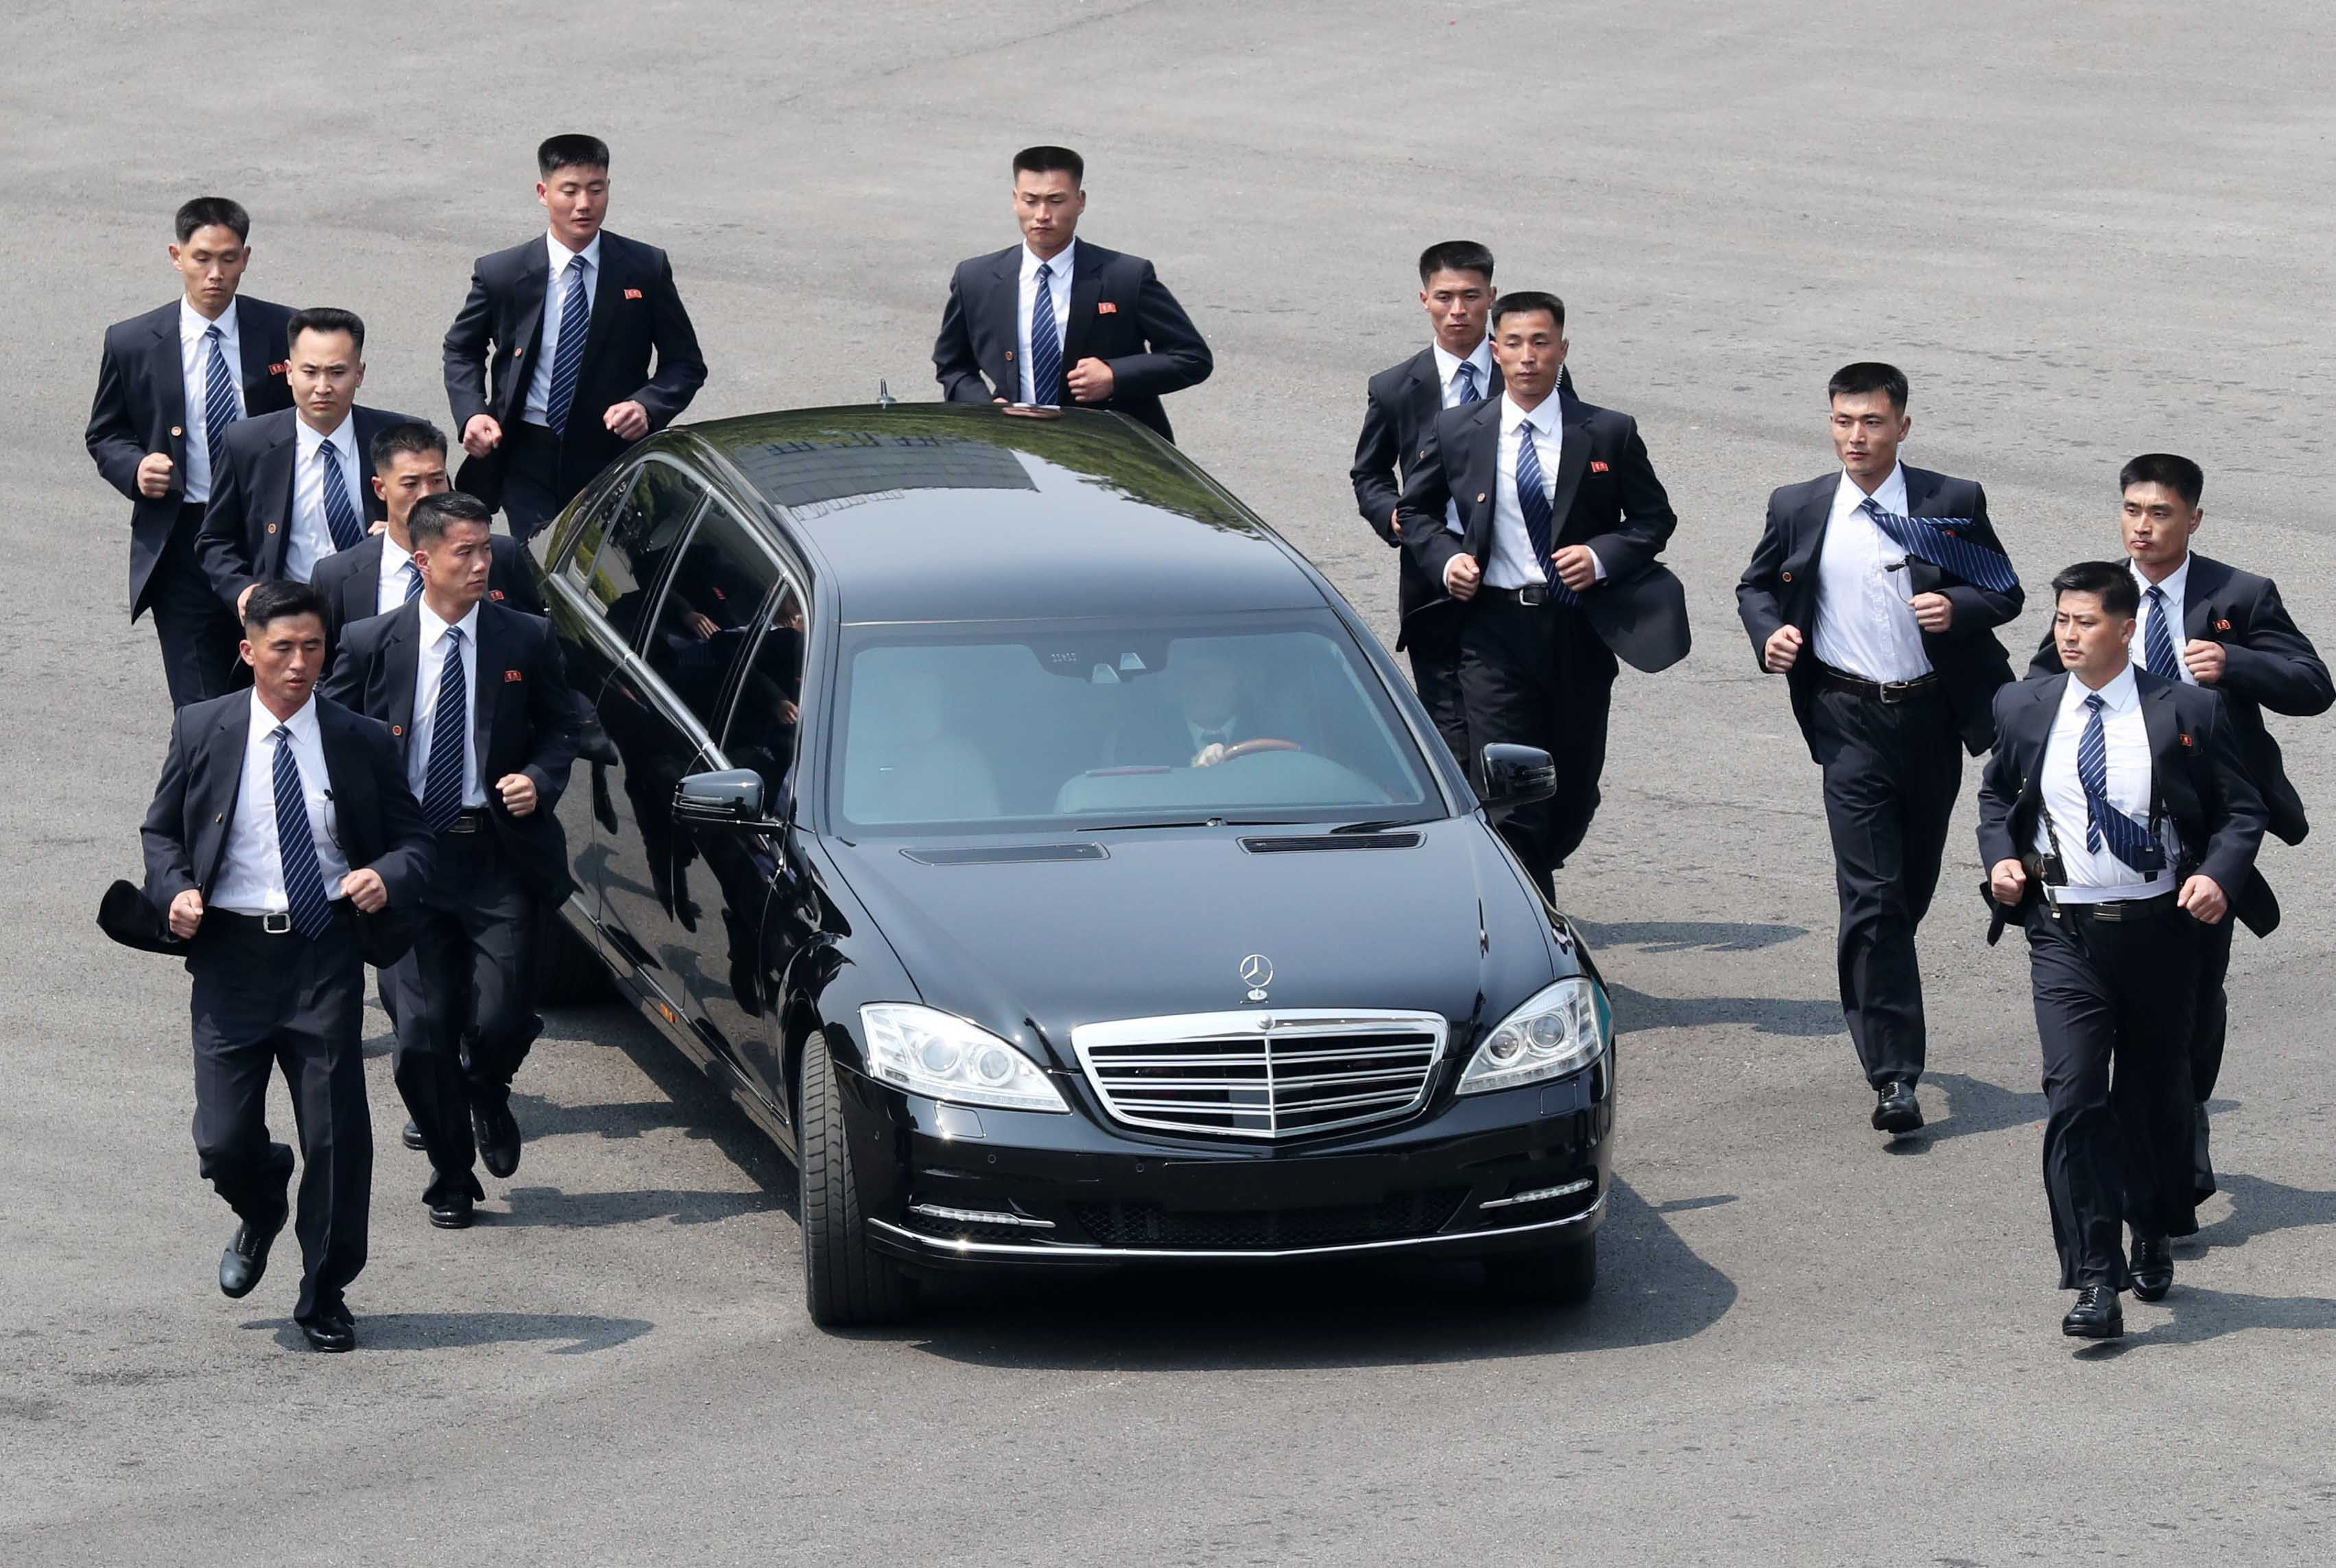 Kim Jong-Un's 'Strangely Hypnotic' Security Detail Steals The Show With 12-Man Synchronised Limo